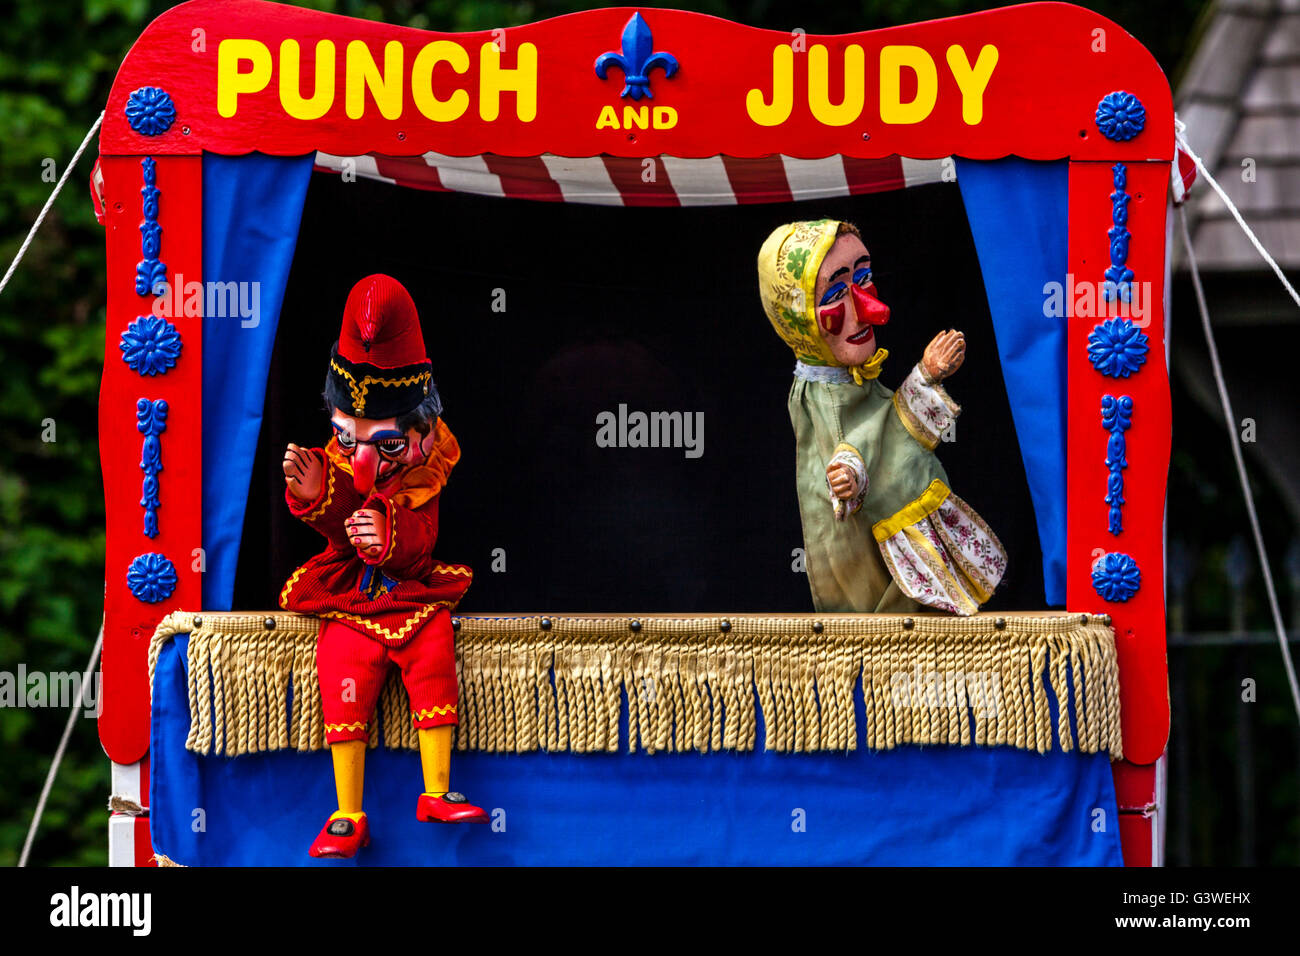 A Traditional Punch and Judy Show Performed At The Annual Medieval Fair Of Abinger, Surrey, UK - Stock Image